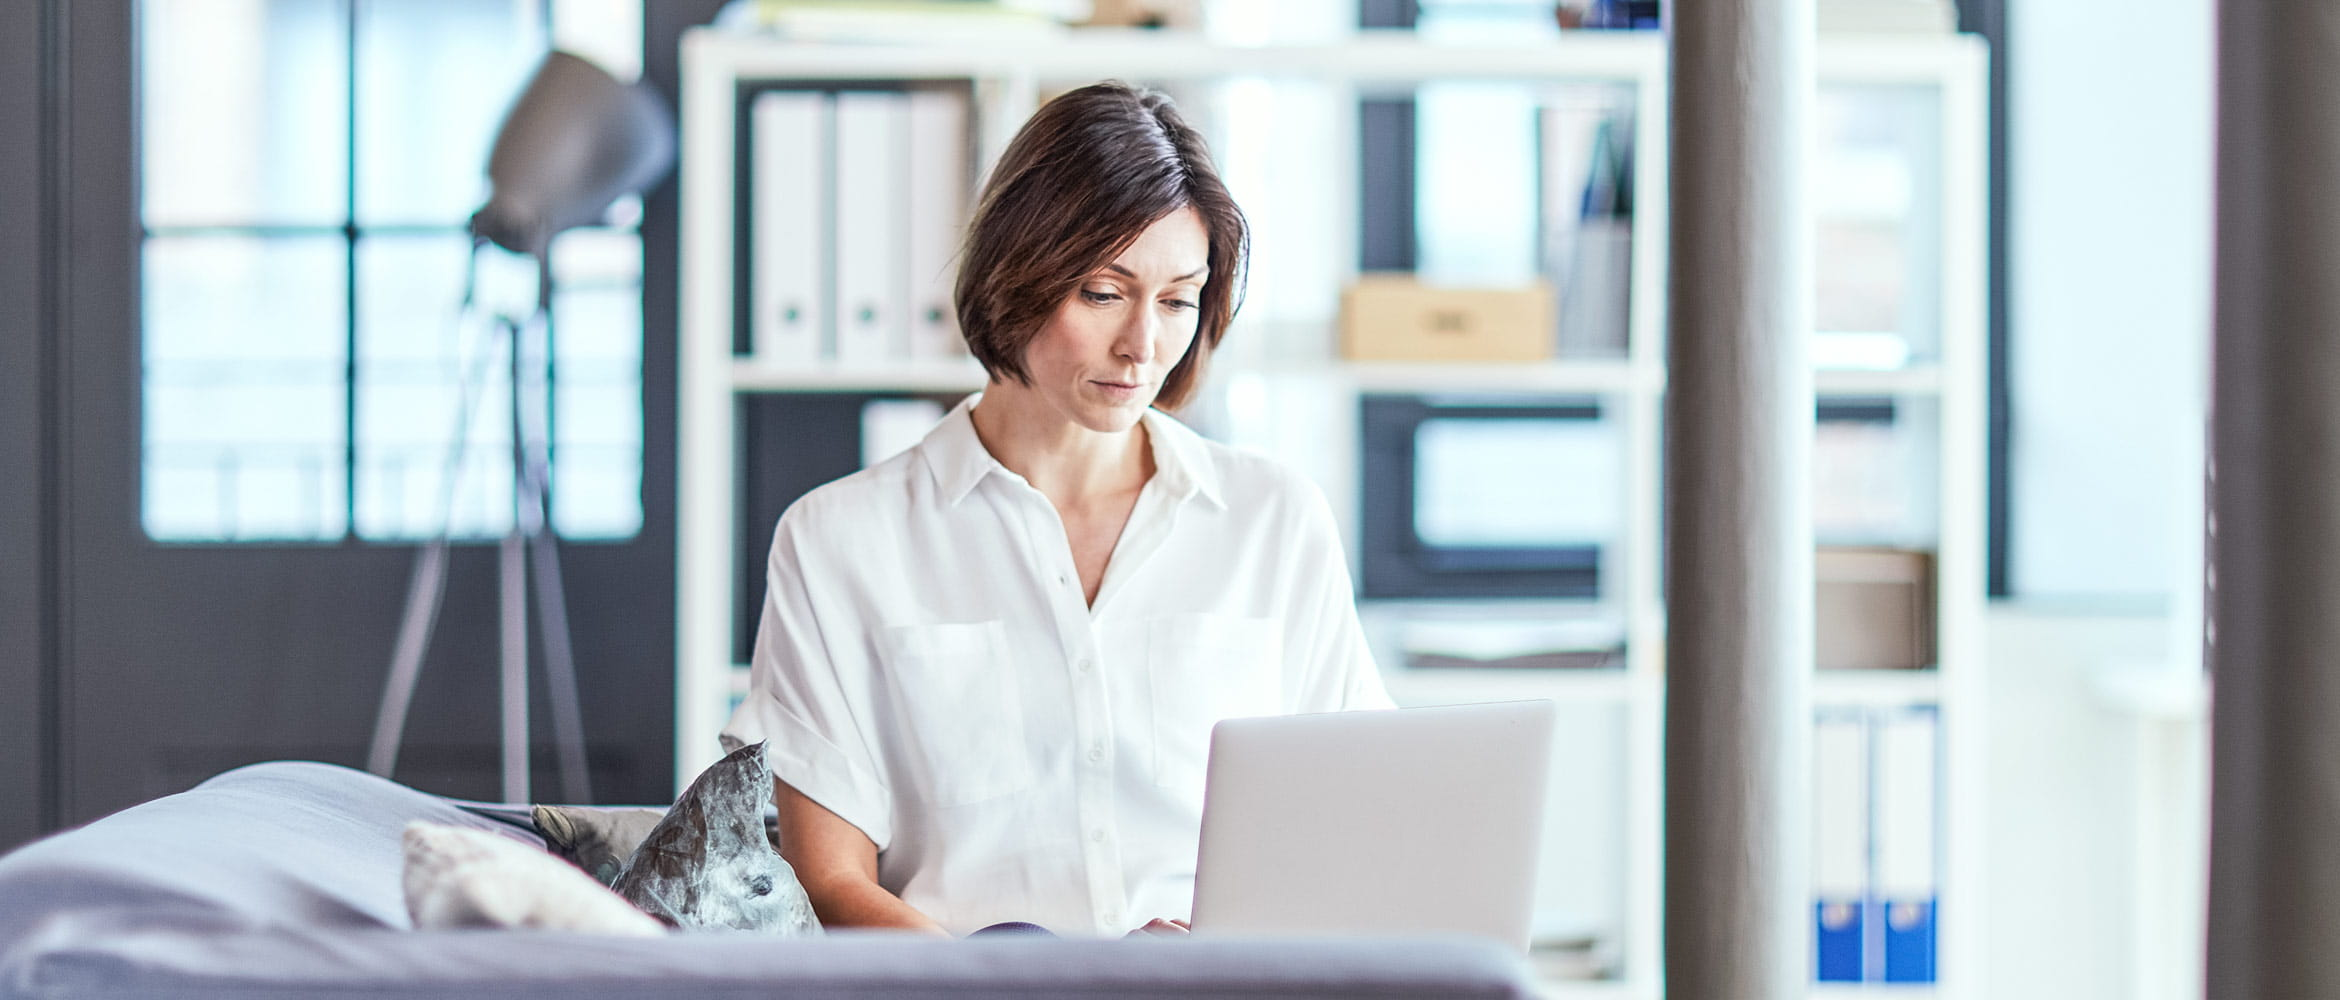 Woman sat at her desk typing on her laptop in office setting